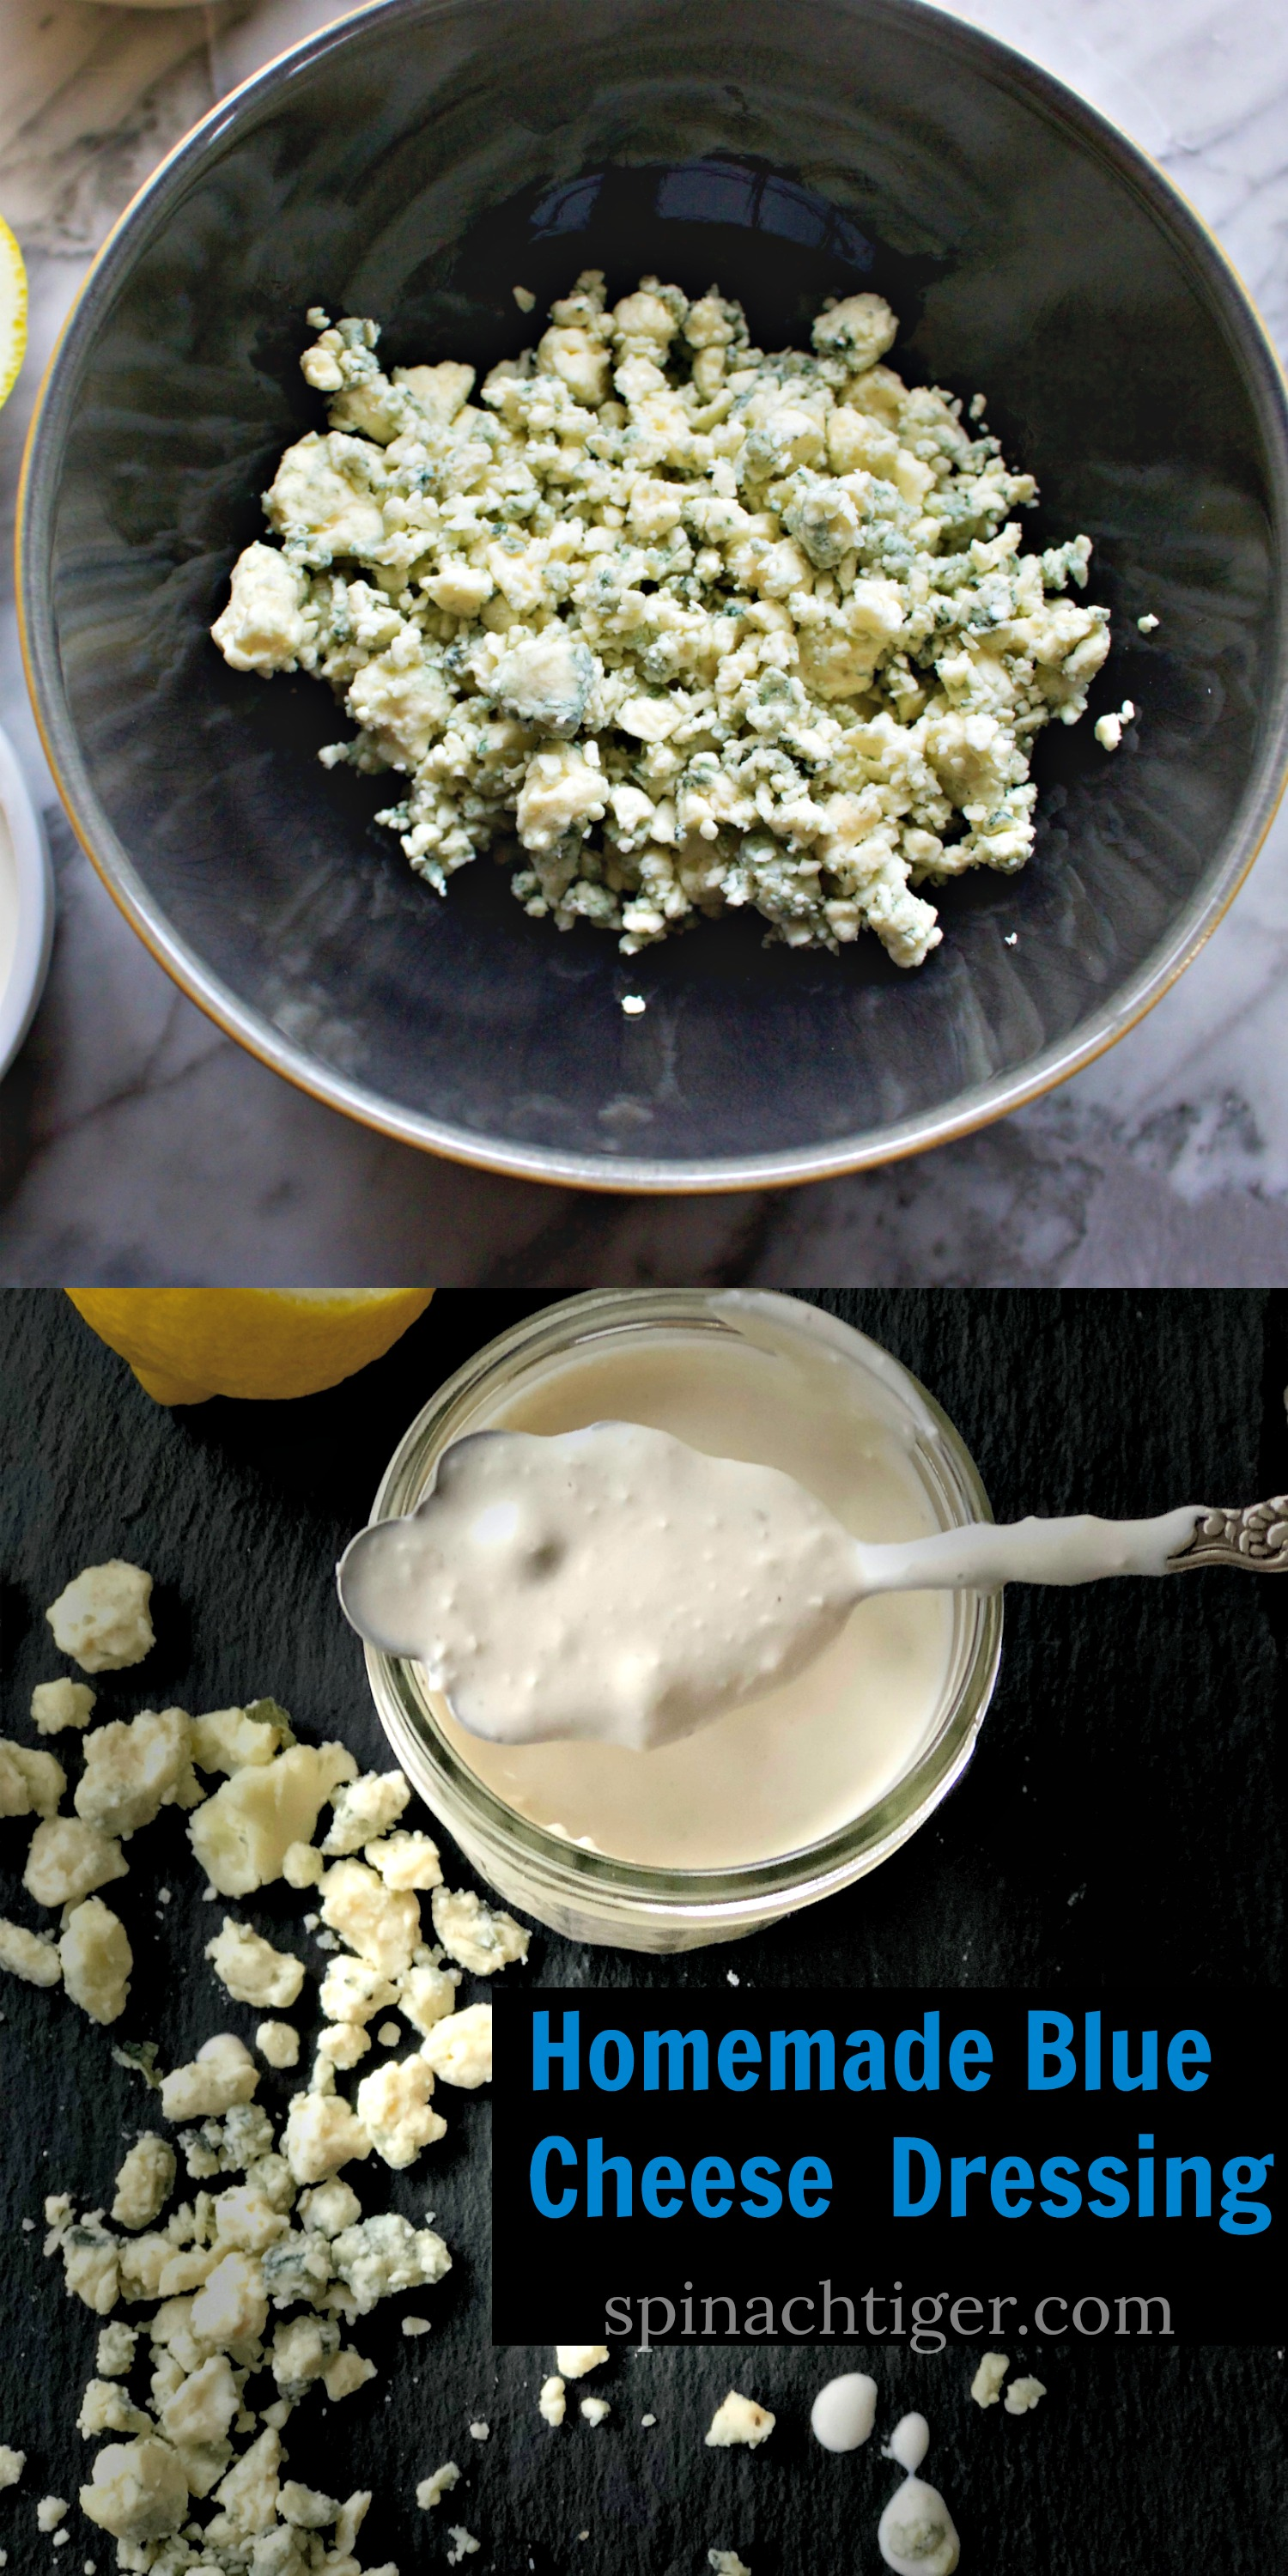 Homemade Blue Cheese Dressing from Spinach TIger